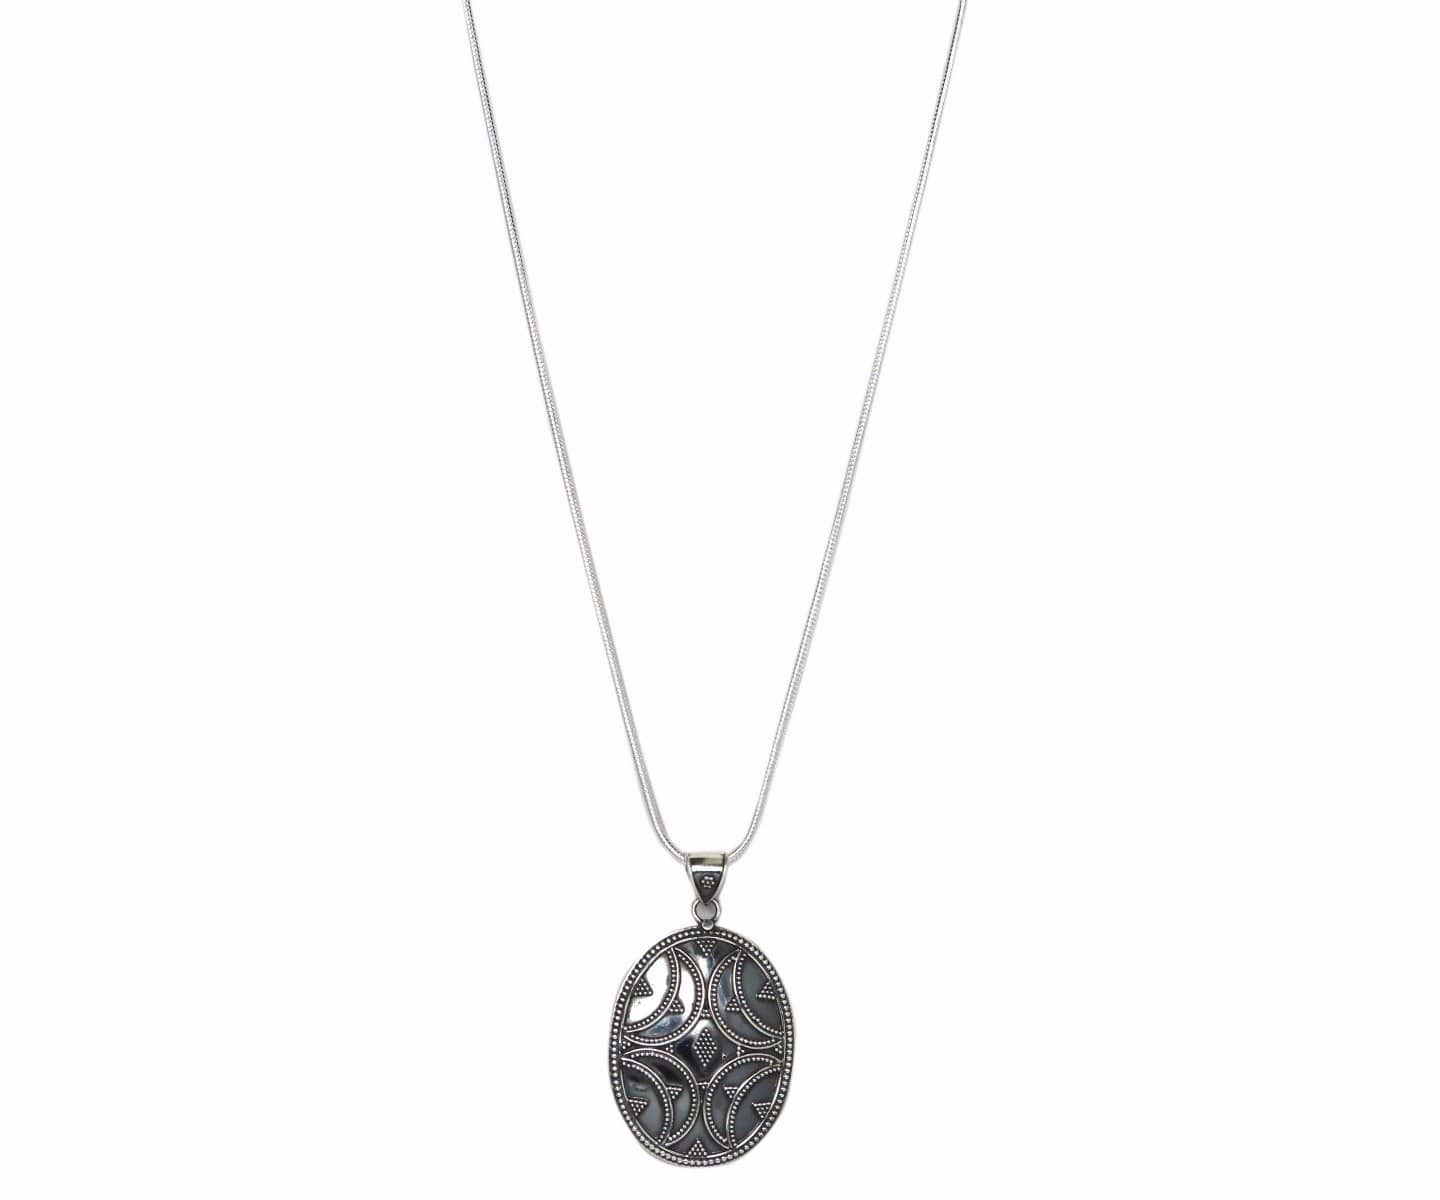 Solid Sterling Silver Tribal Detailed Pendant Necklace